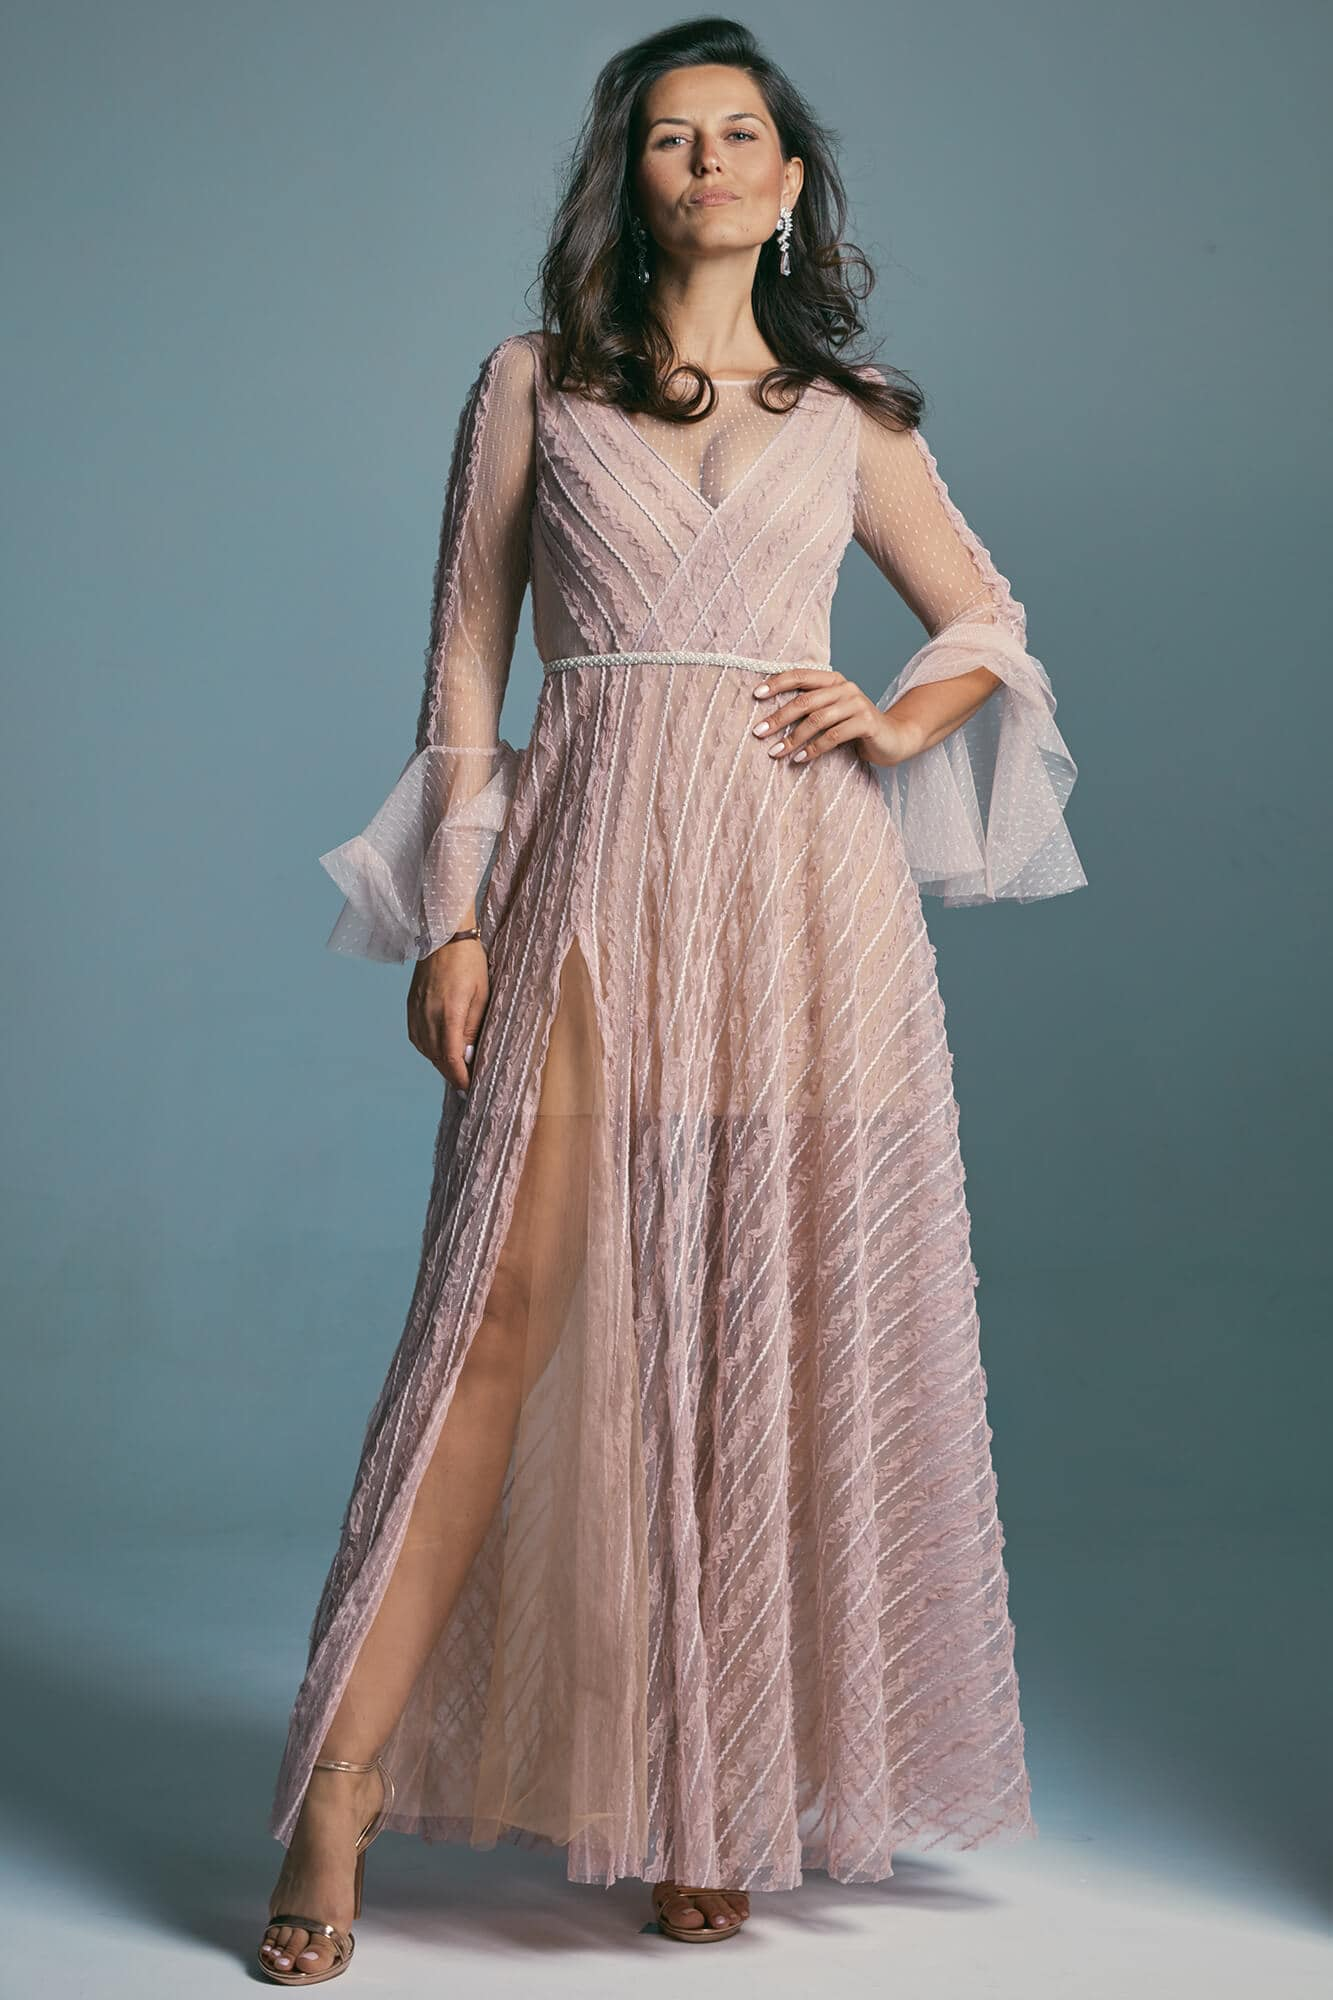 A dirty pink wedding dress made of tulle with delicate polka dots. Venezia 2